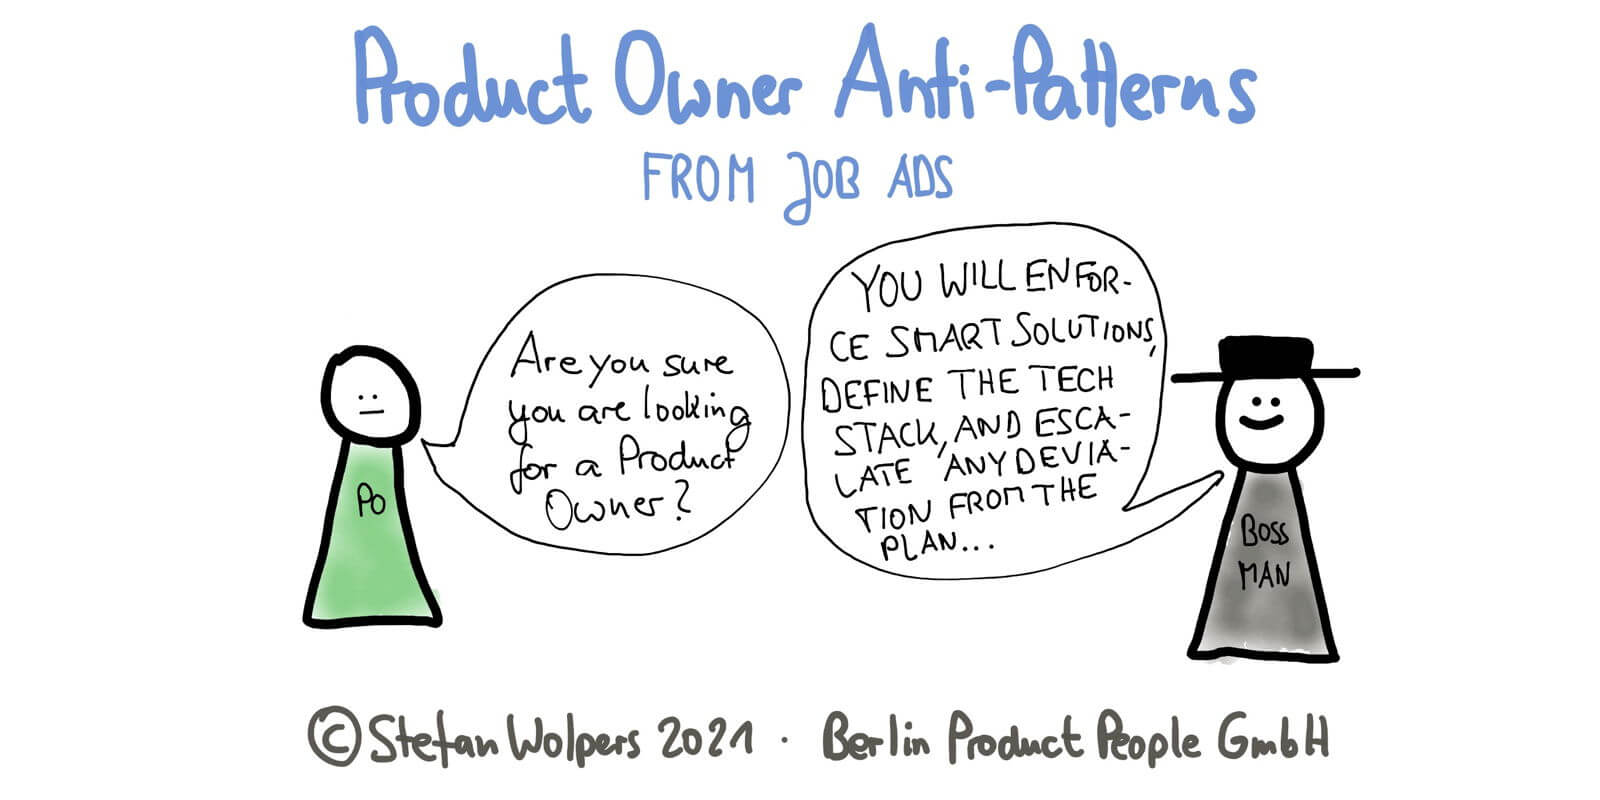 23 Product Owner Anti-Patterns from Job Ads: The Snitch, the Whip, the Bookkeeper, the Six Sigma Black Belt™